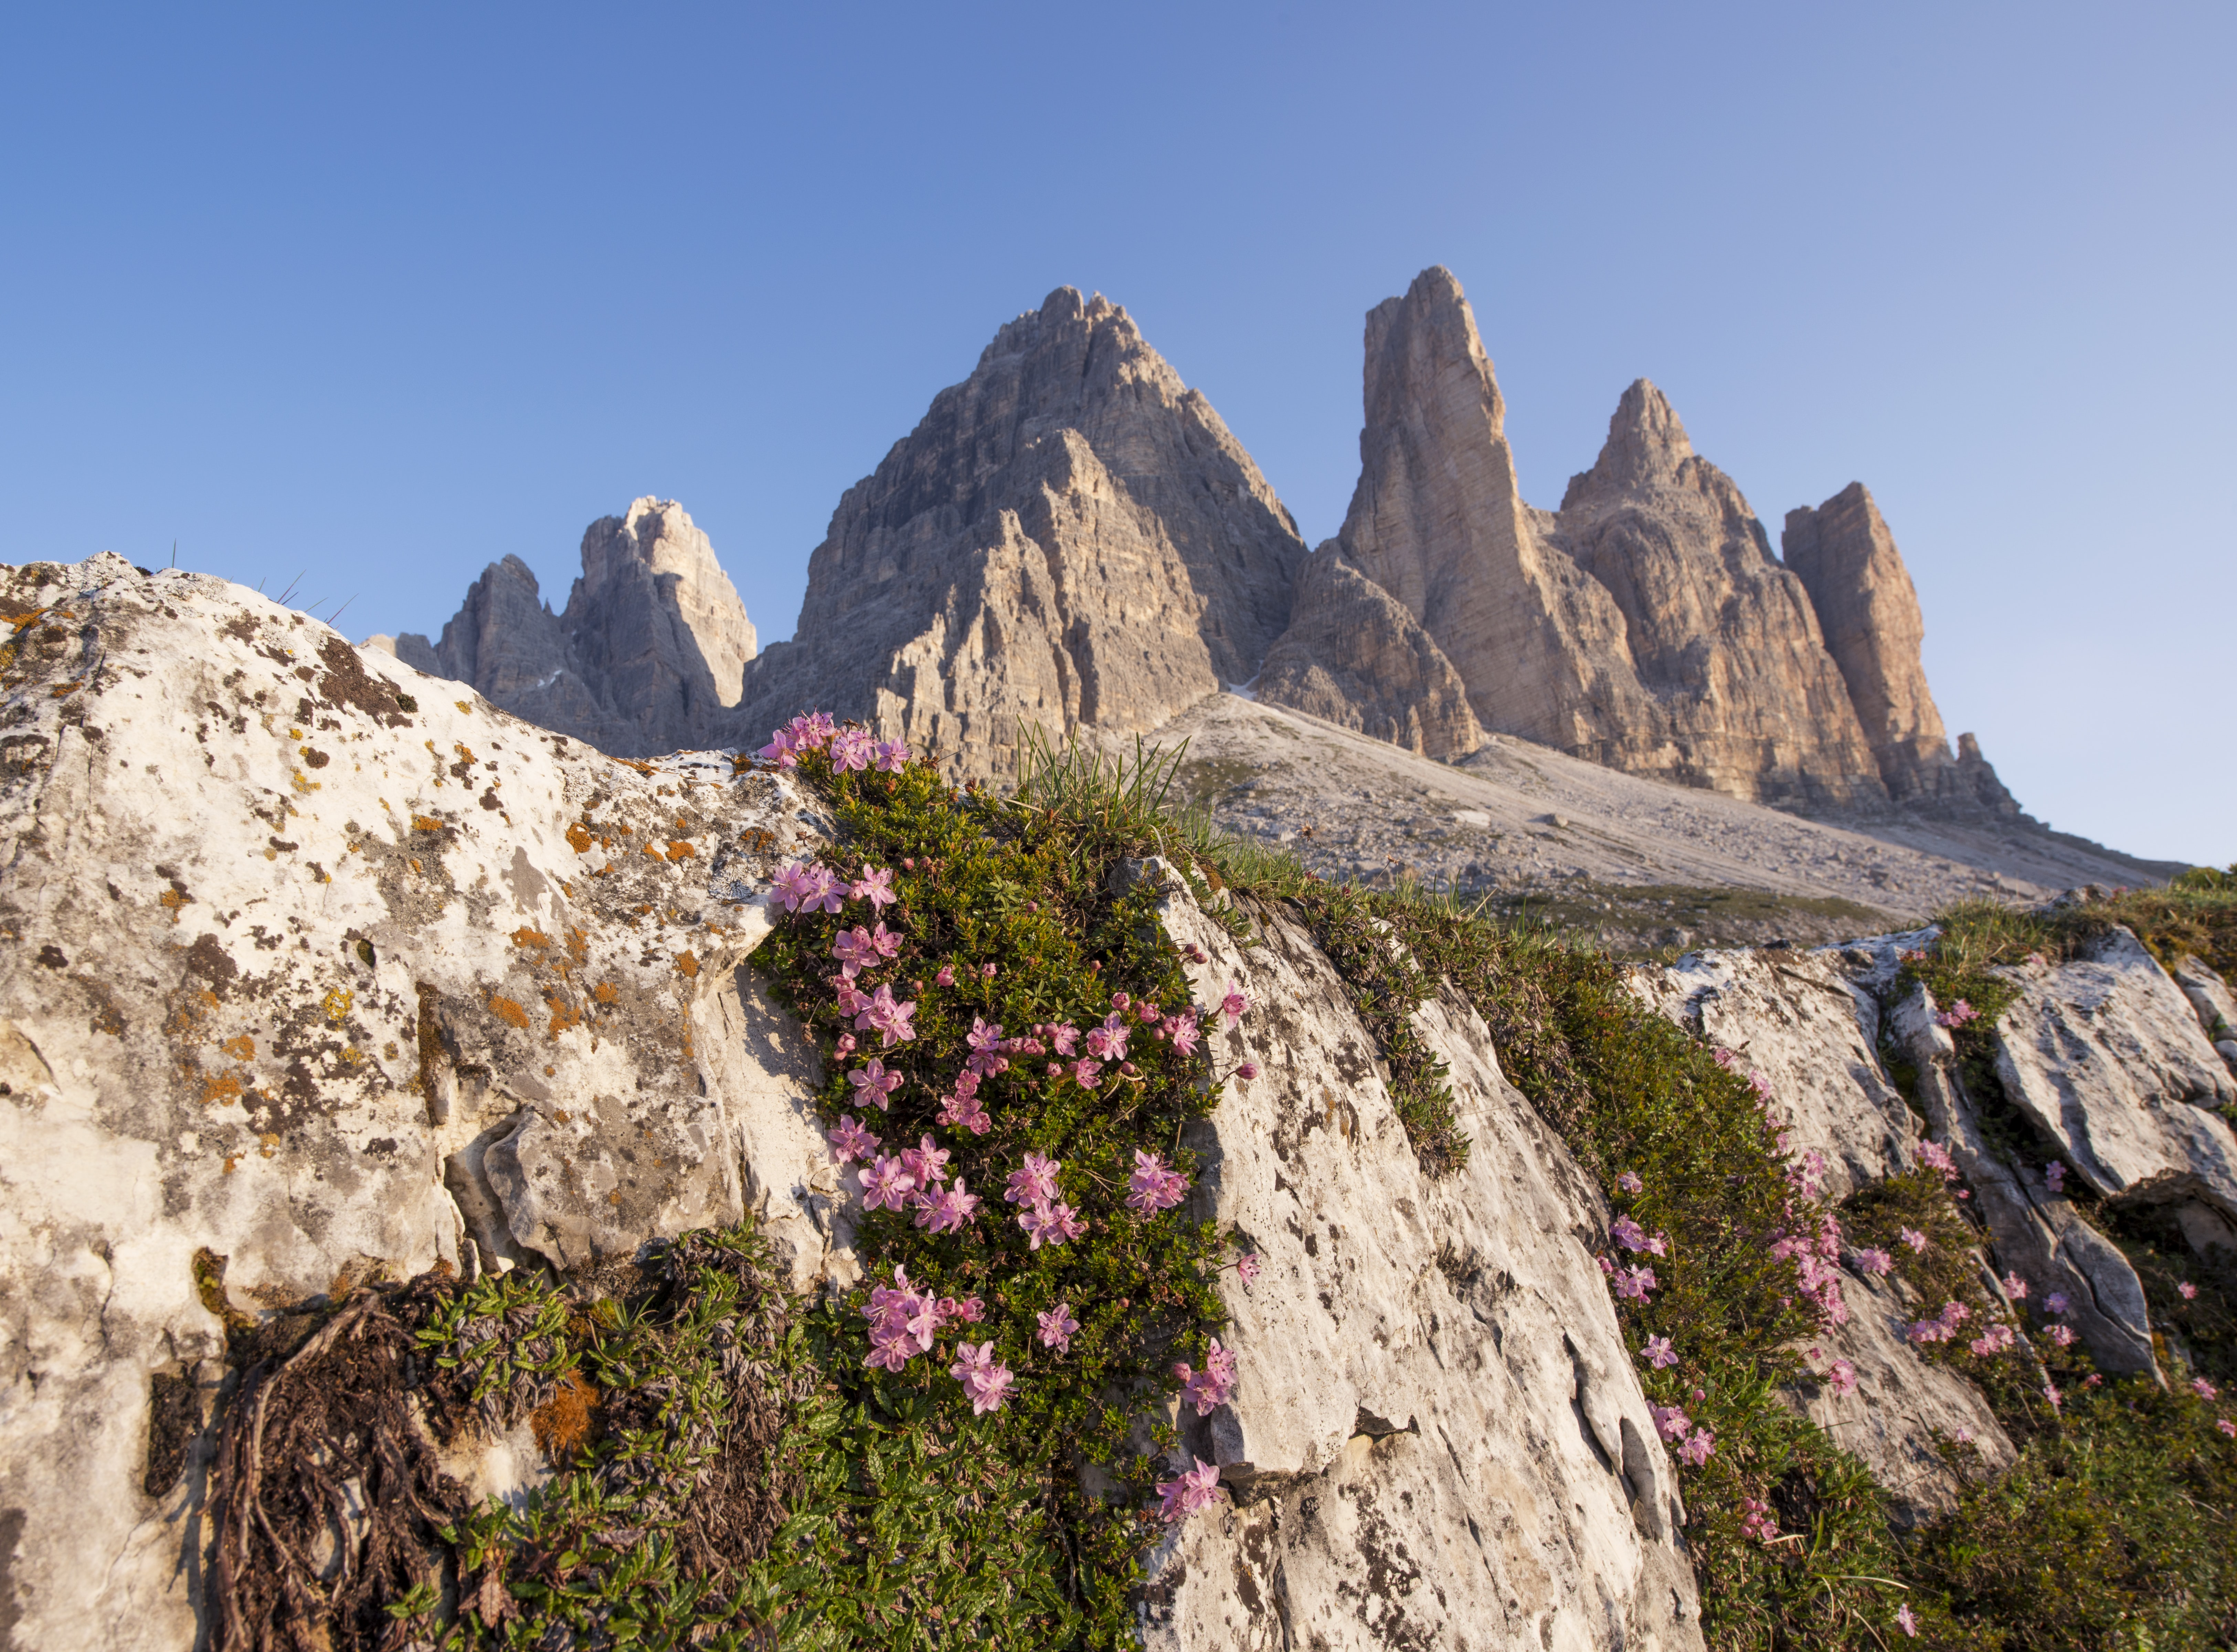 Pink flowers climbing up a rocky face in the mountains